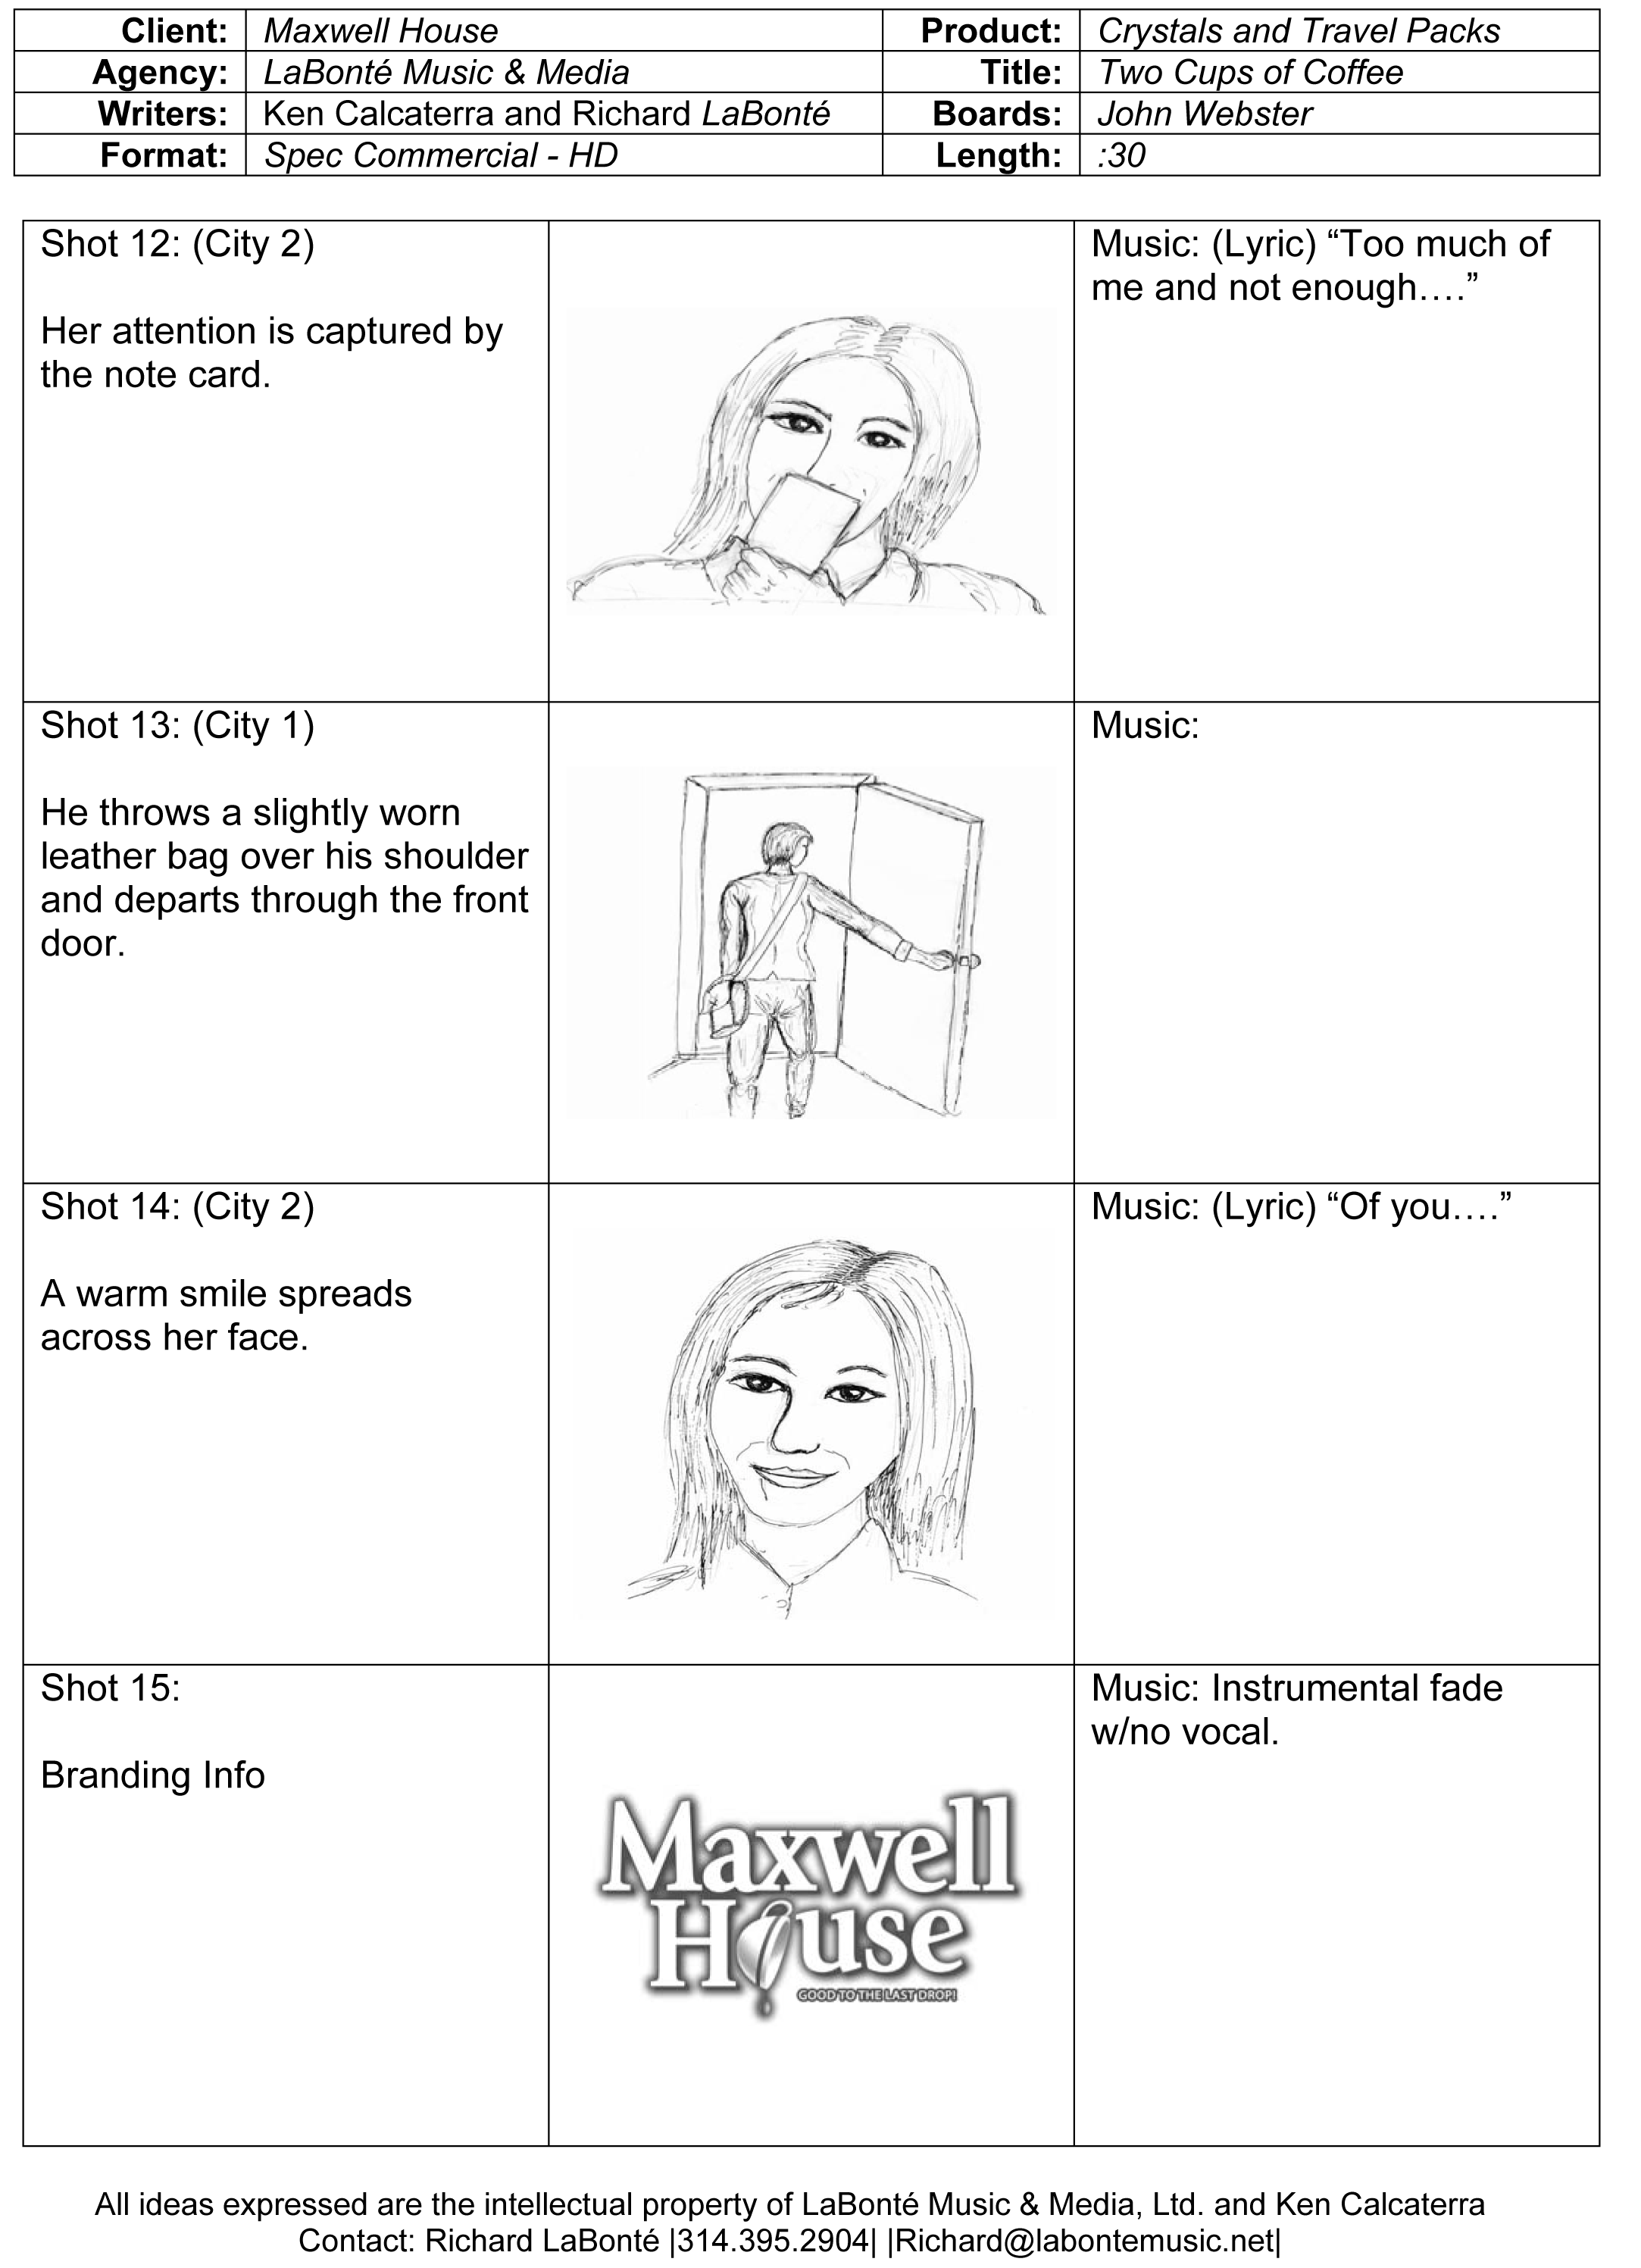 2 Cups of Coffee_Maxwell House Storyboard_050613-4